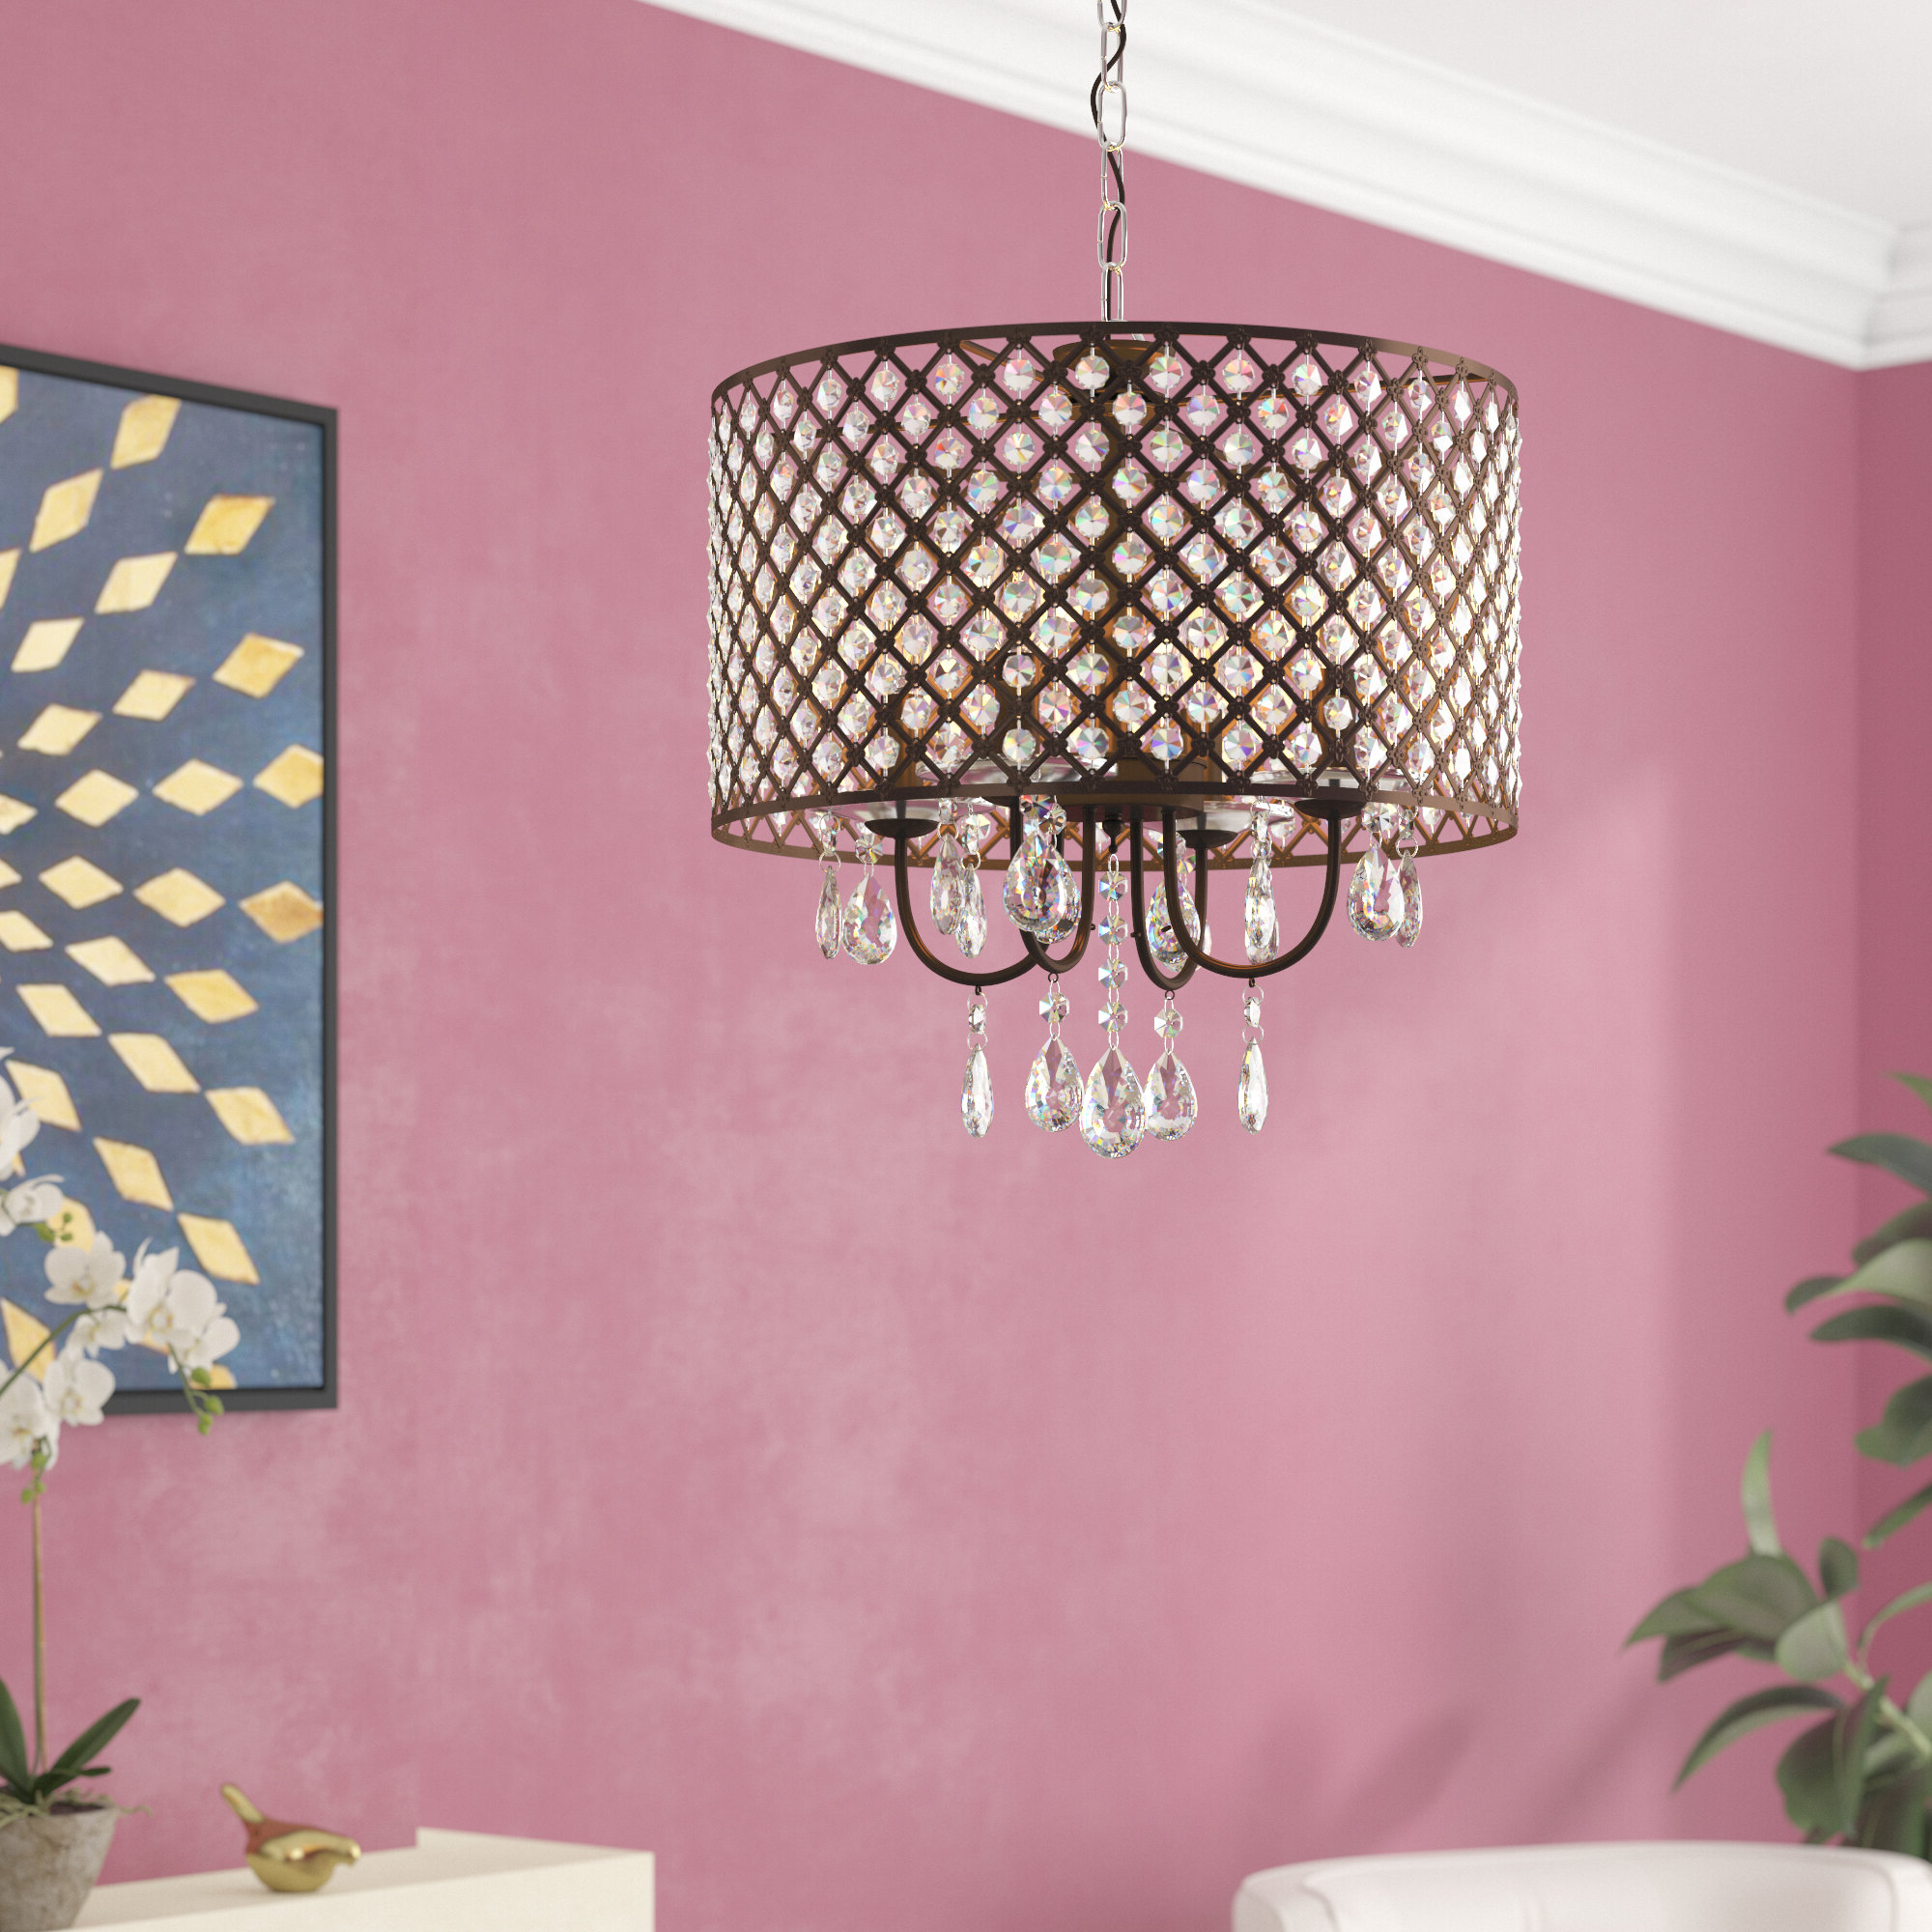 Gautier 4 Light Drum Chandelier Within Latest Gisselle 4 Light Drum Chandeliers (Gallery 8 of 20)